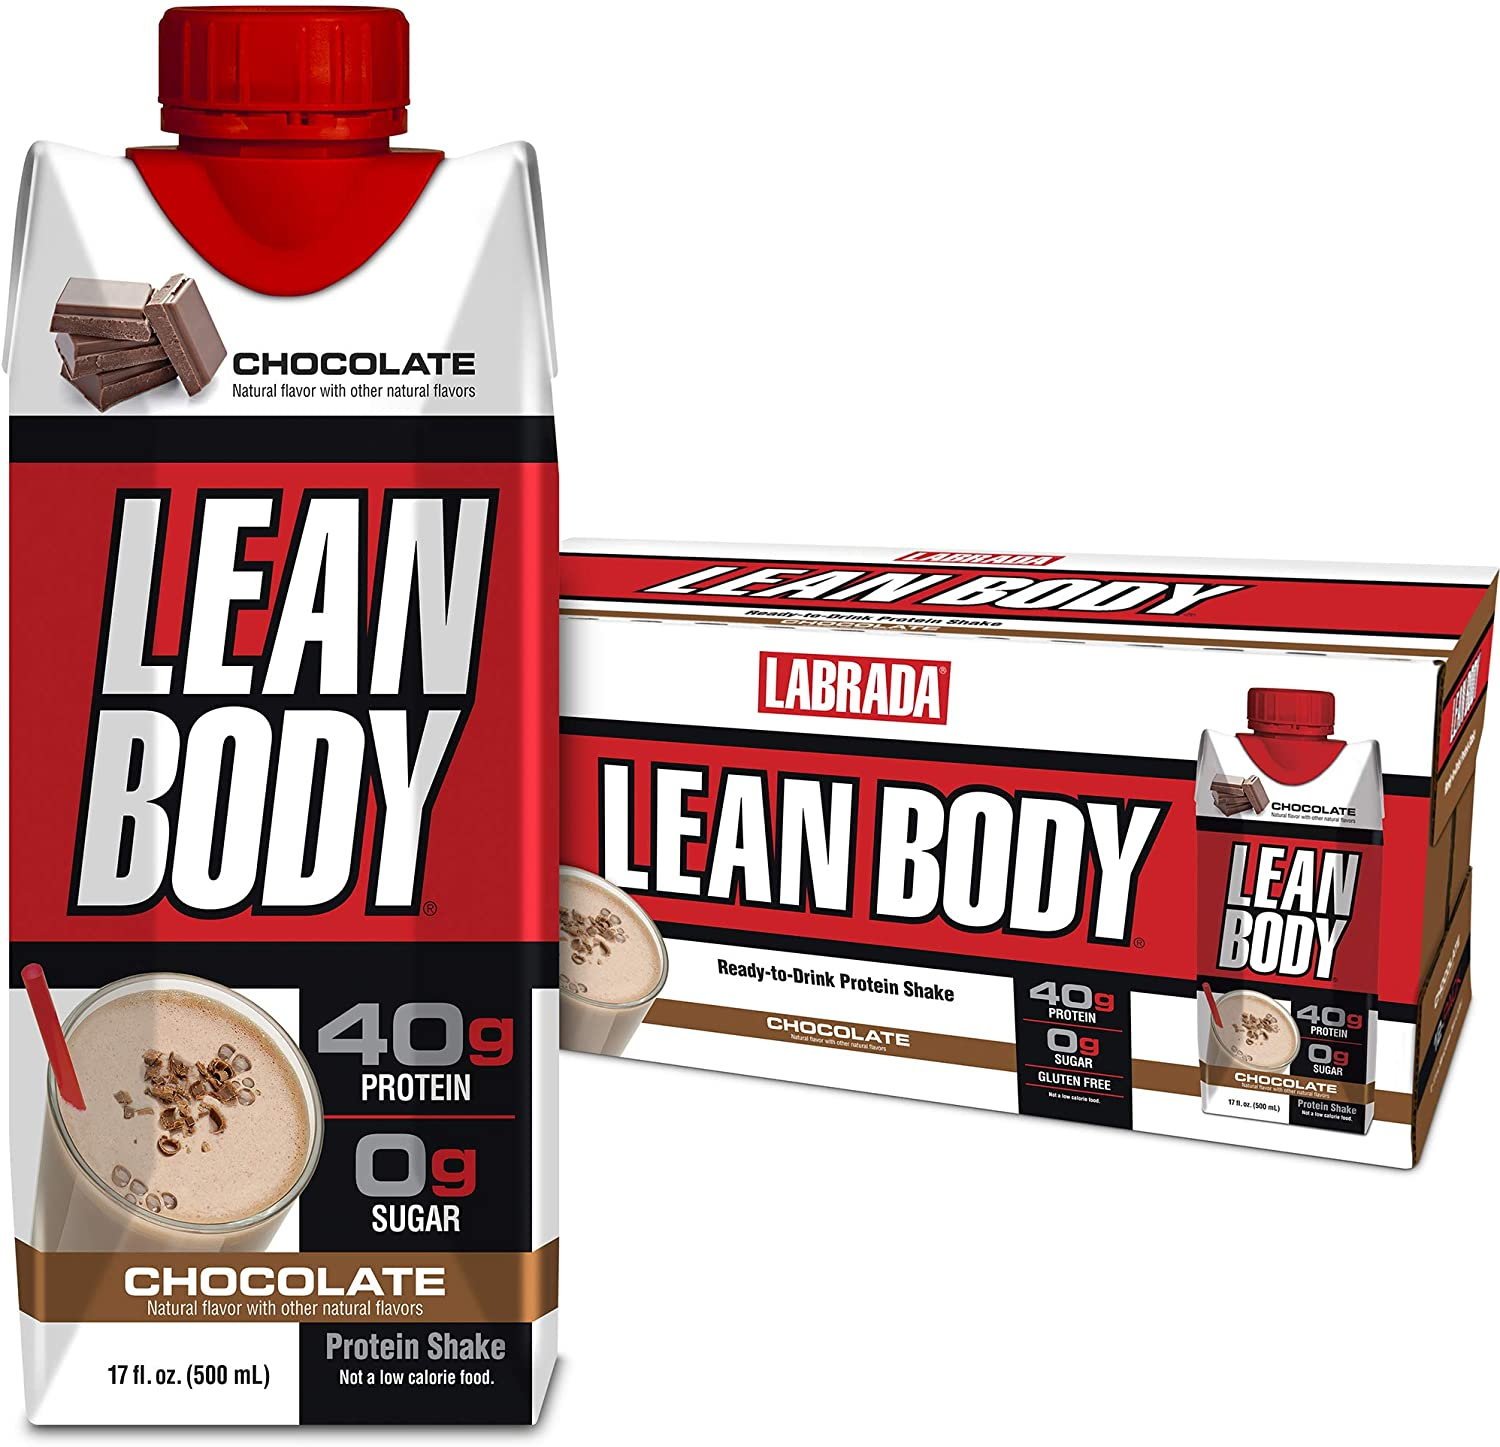 Lean Body Ready-to-Drink Chocolate Protein Shake, 40g Protein, Whey Blend, 0 Sugar, Gluten Free, 22 Vitamins & Minerals, (Recyclable Carton & Lid - Pack of 12) LABRADA: Health & Personal Care